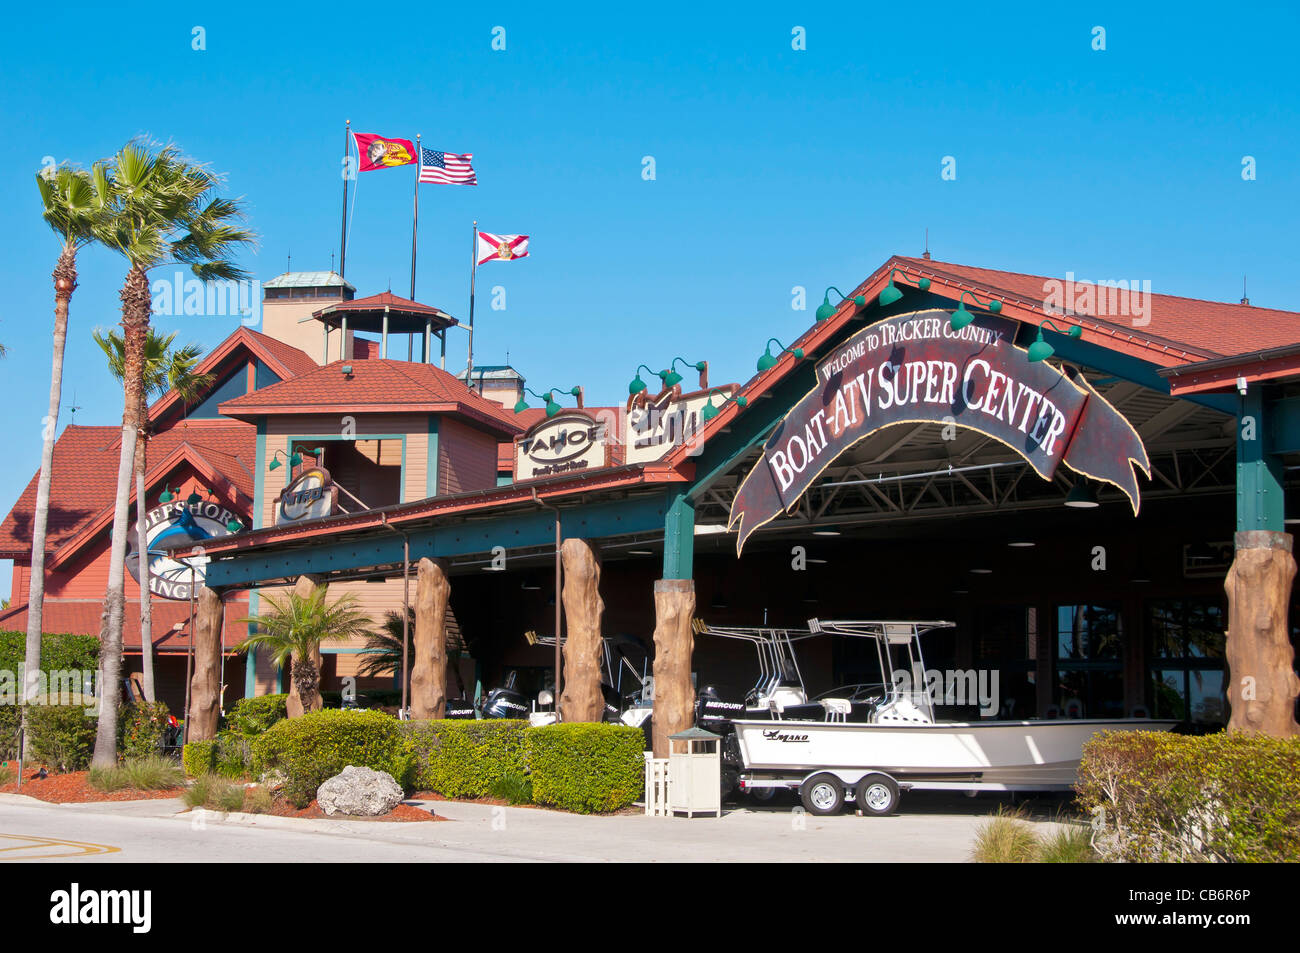 Sep 06,  · Located in Orlando FL and many places in USA definitely the Bass Pro Shops is a the best for buy fishing and hunting equipments, clothes and shoes for this sports! Thank cromero. IMVpatriciav. 10 1. Reviewed July 10, via mobile. Family fun.5/5(11).